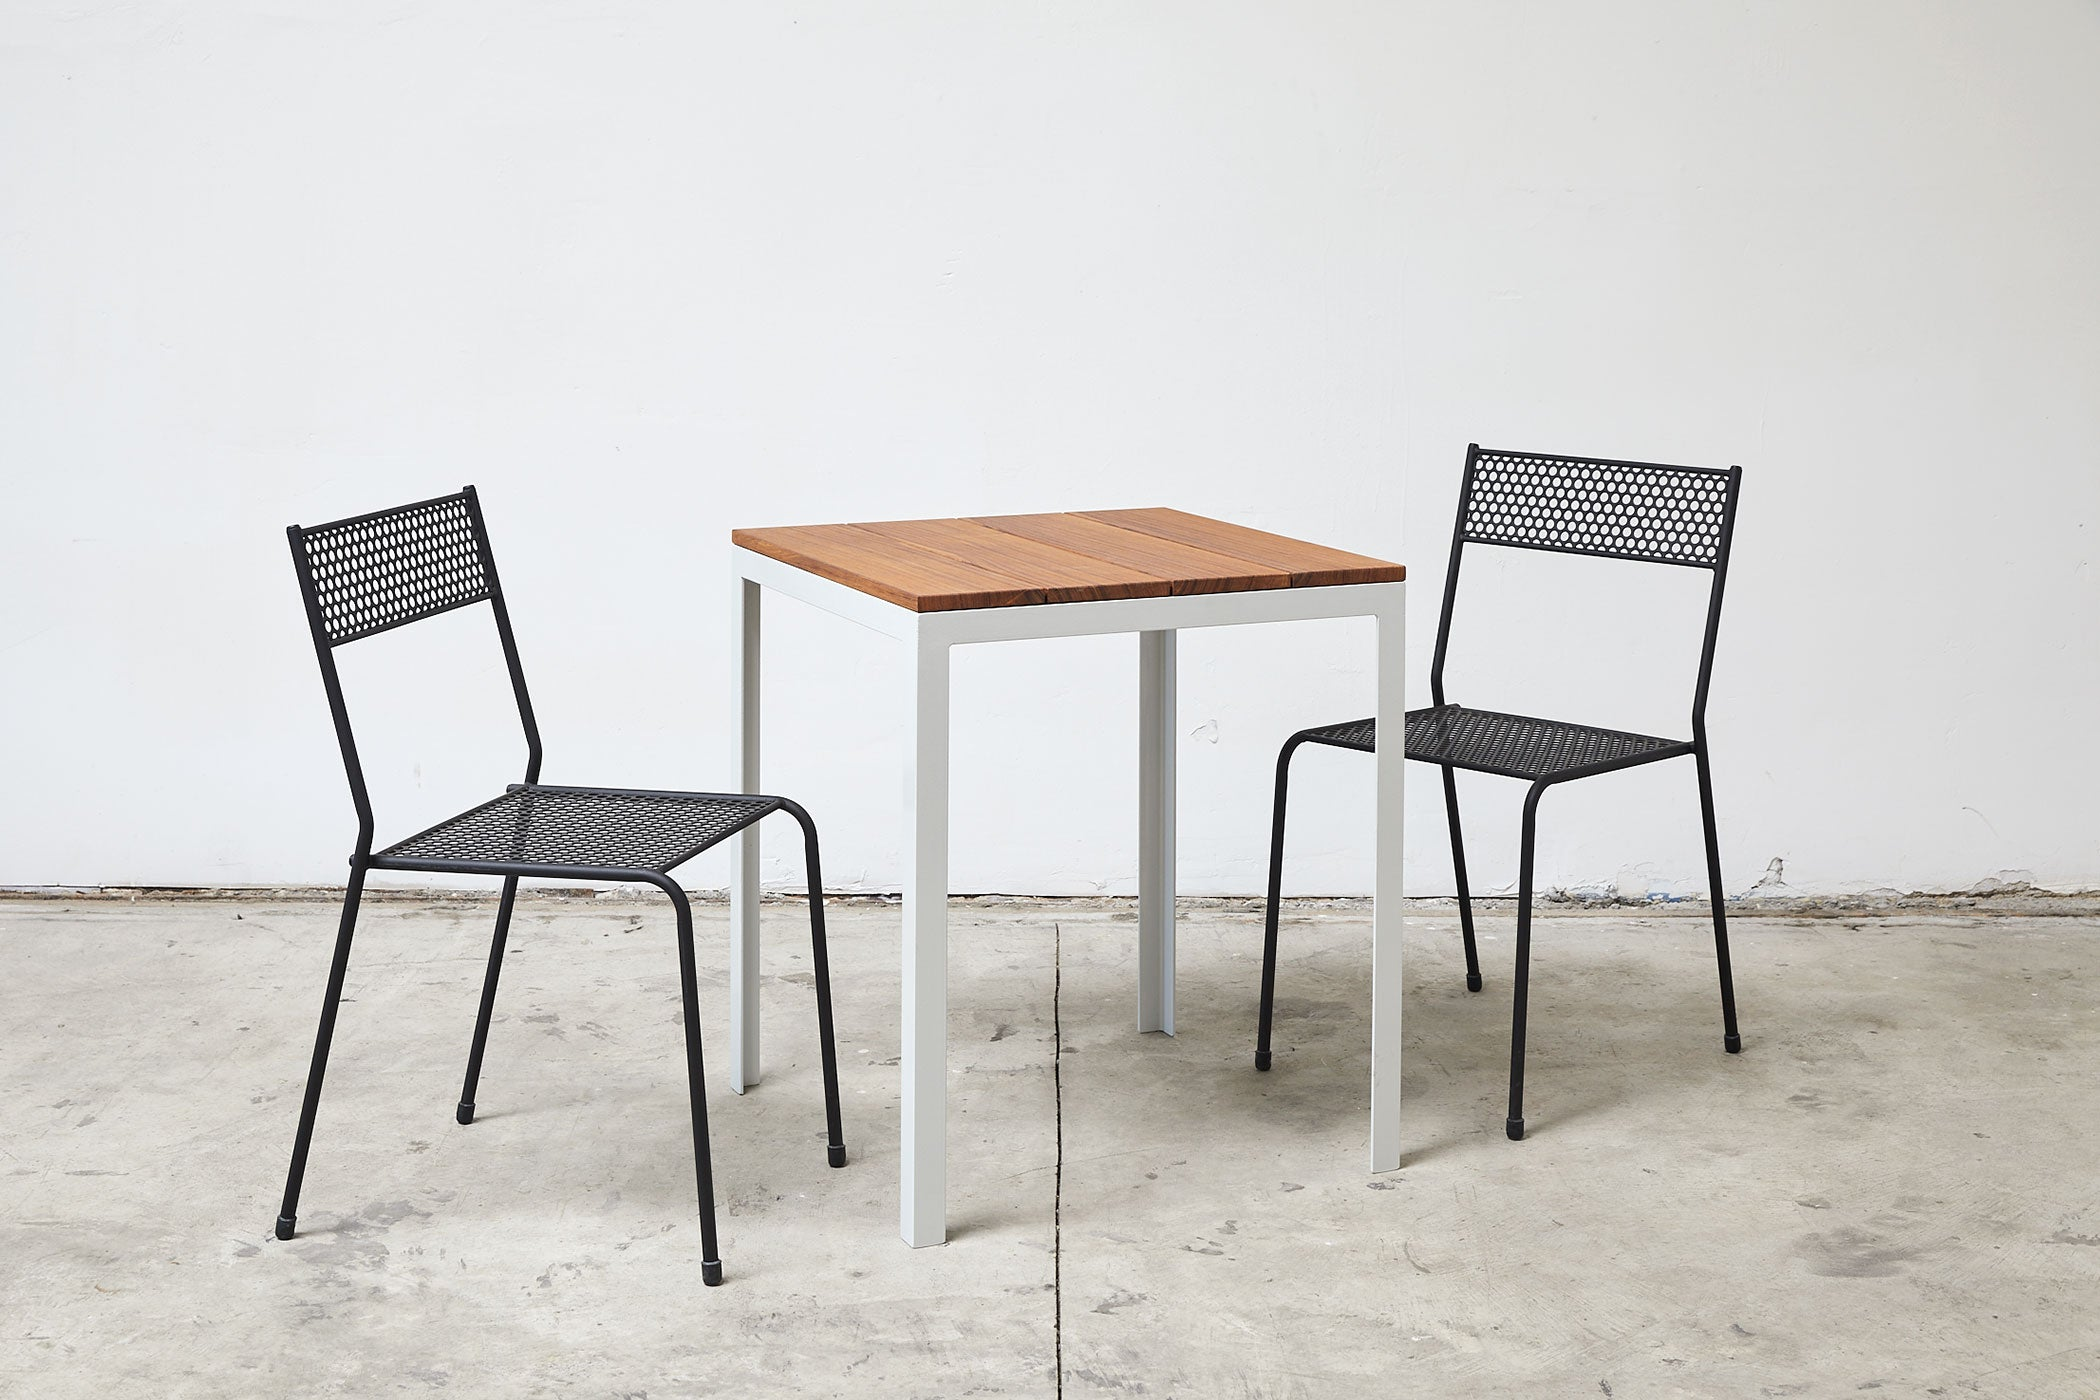 RAD Furniture's Perforated Cafe Chair and Solid Wood-top Table